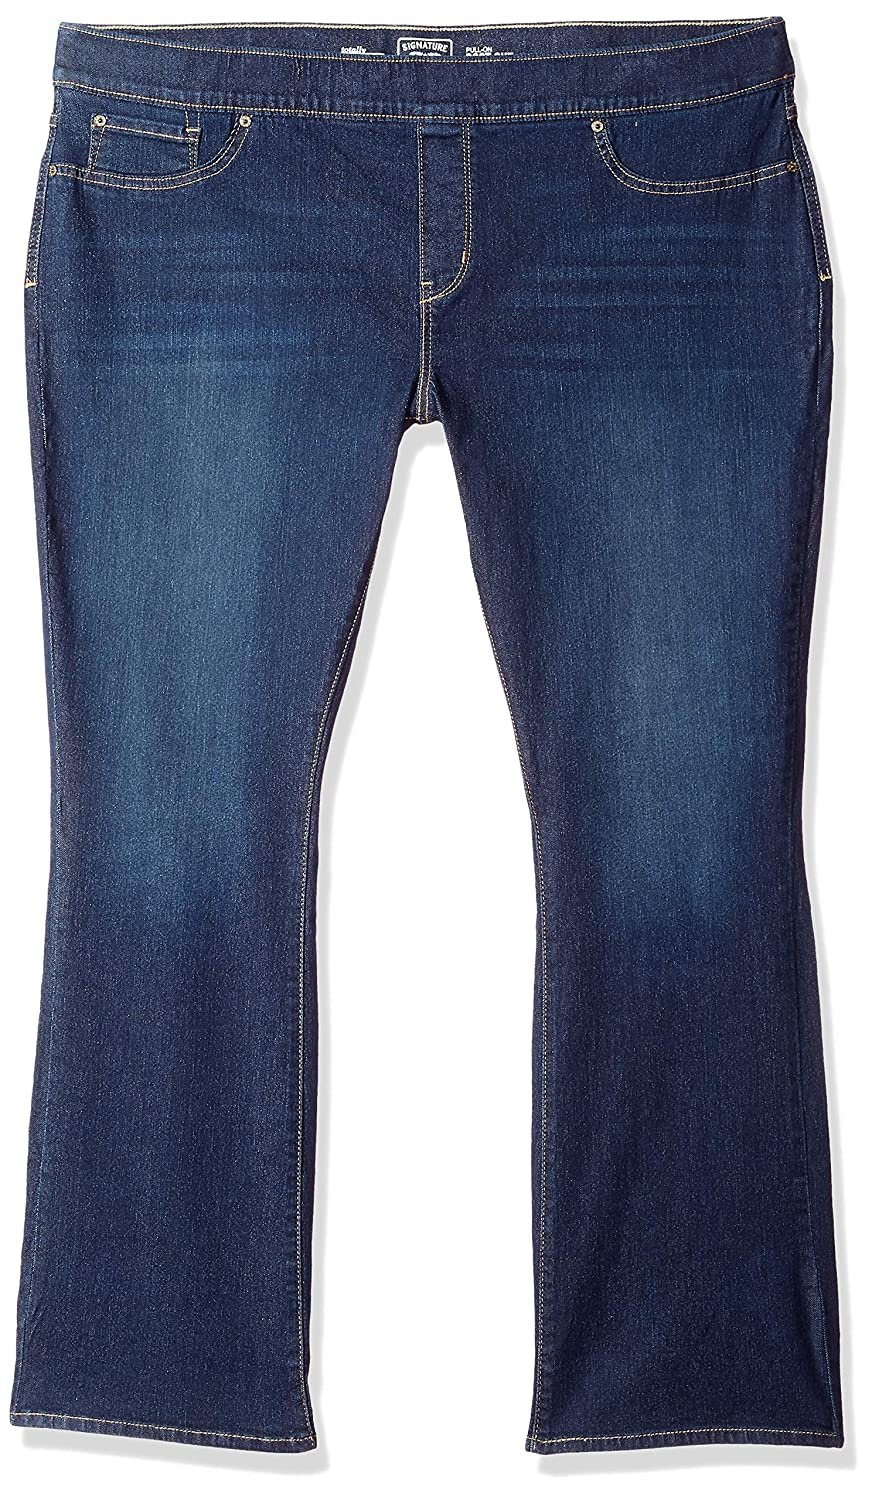 5928a79e93f Signature by Levi Strauss   Co. Gold Label Women s Plus-Size Totally  Shaping Pull On Bootcut Jeans